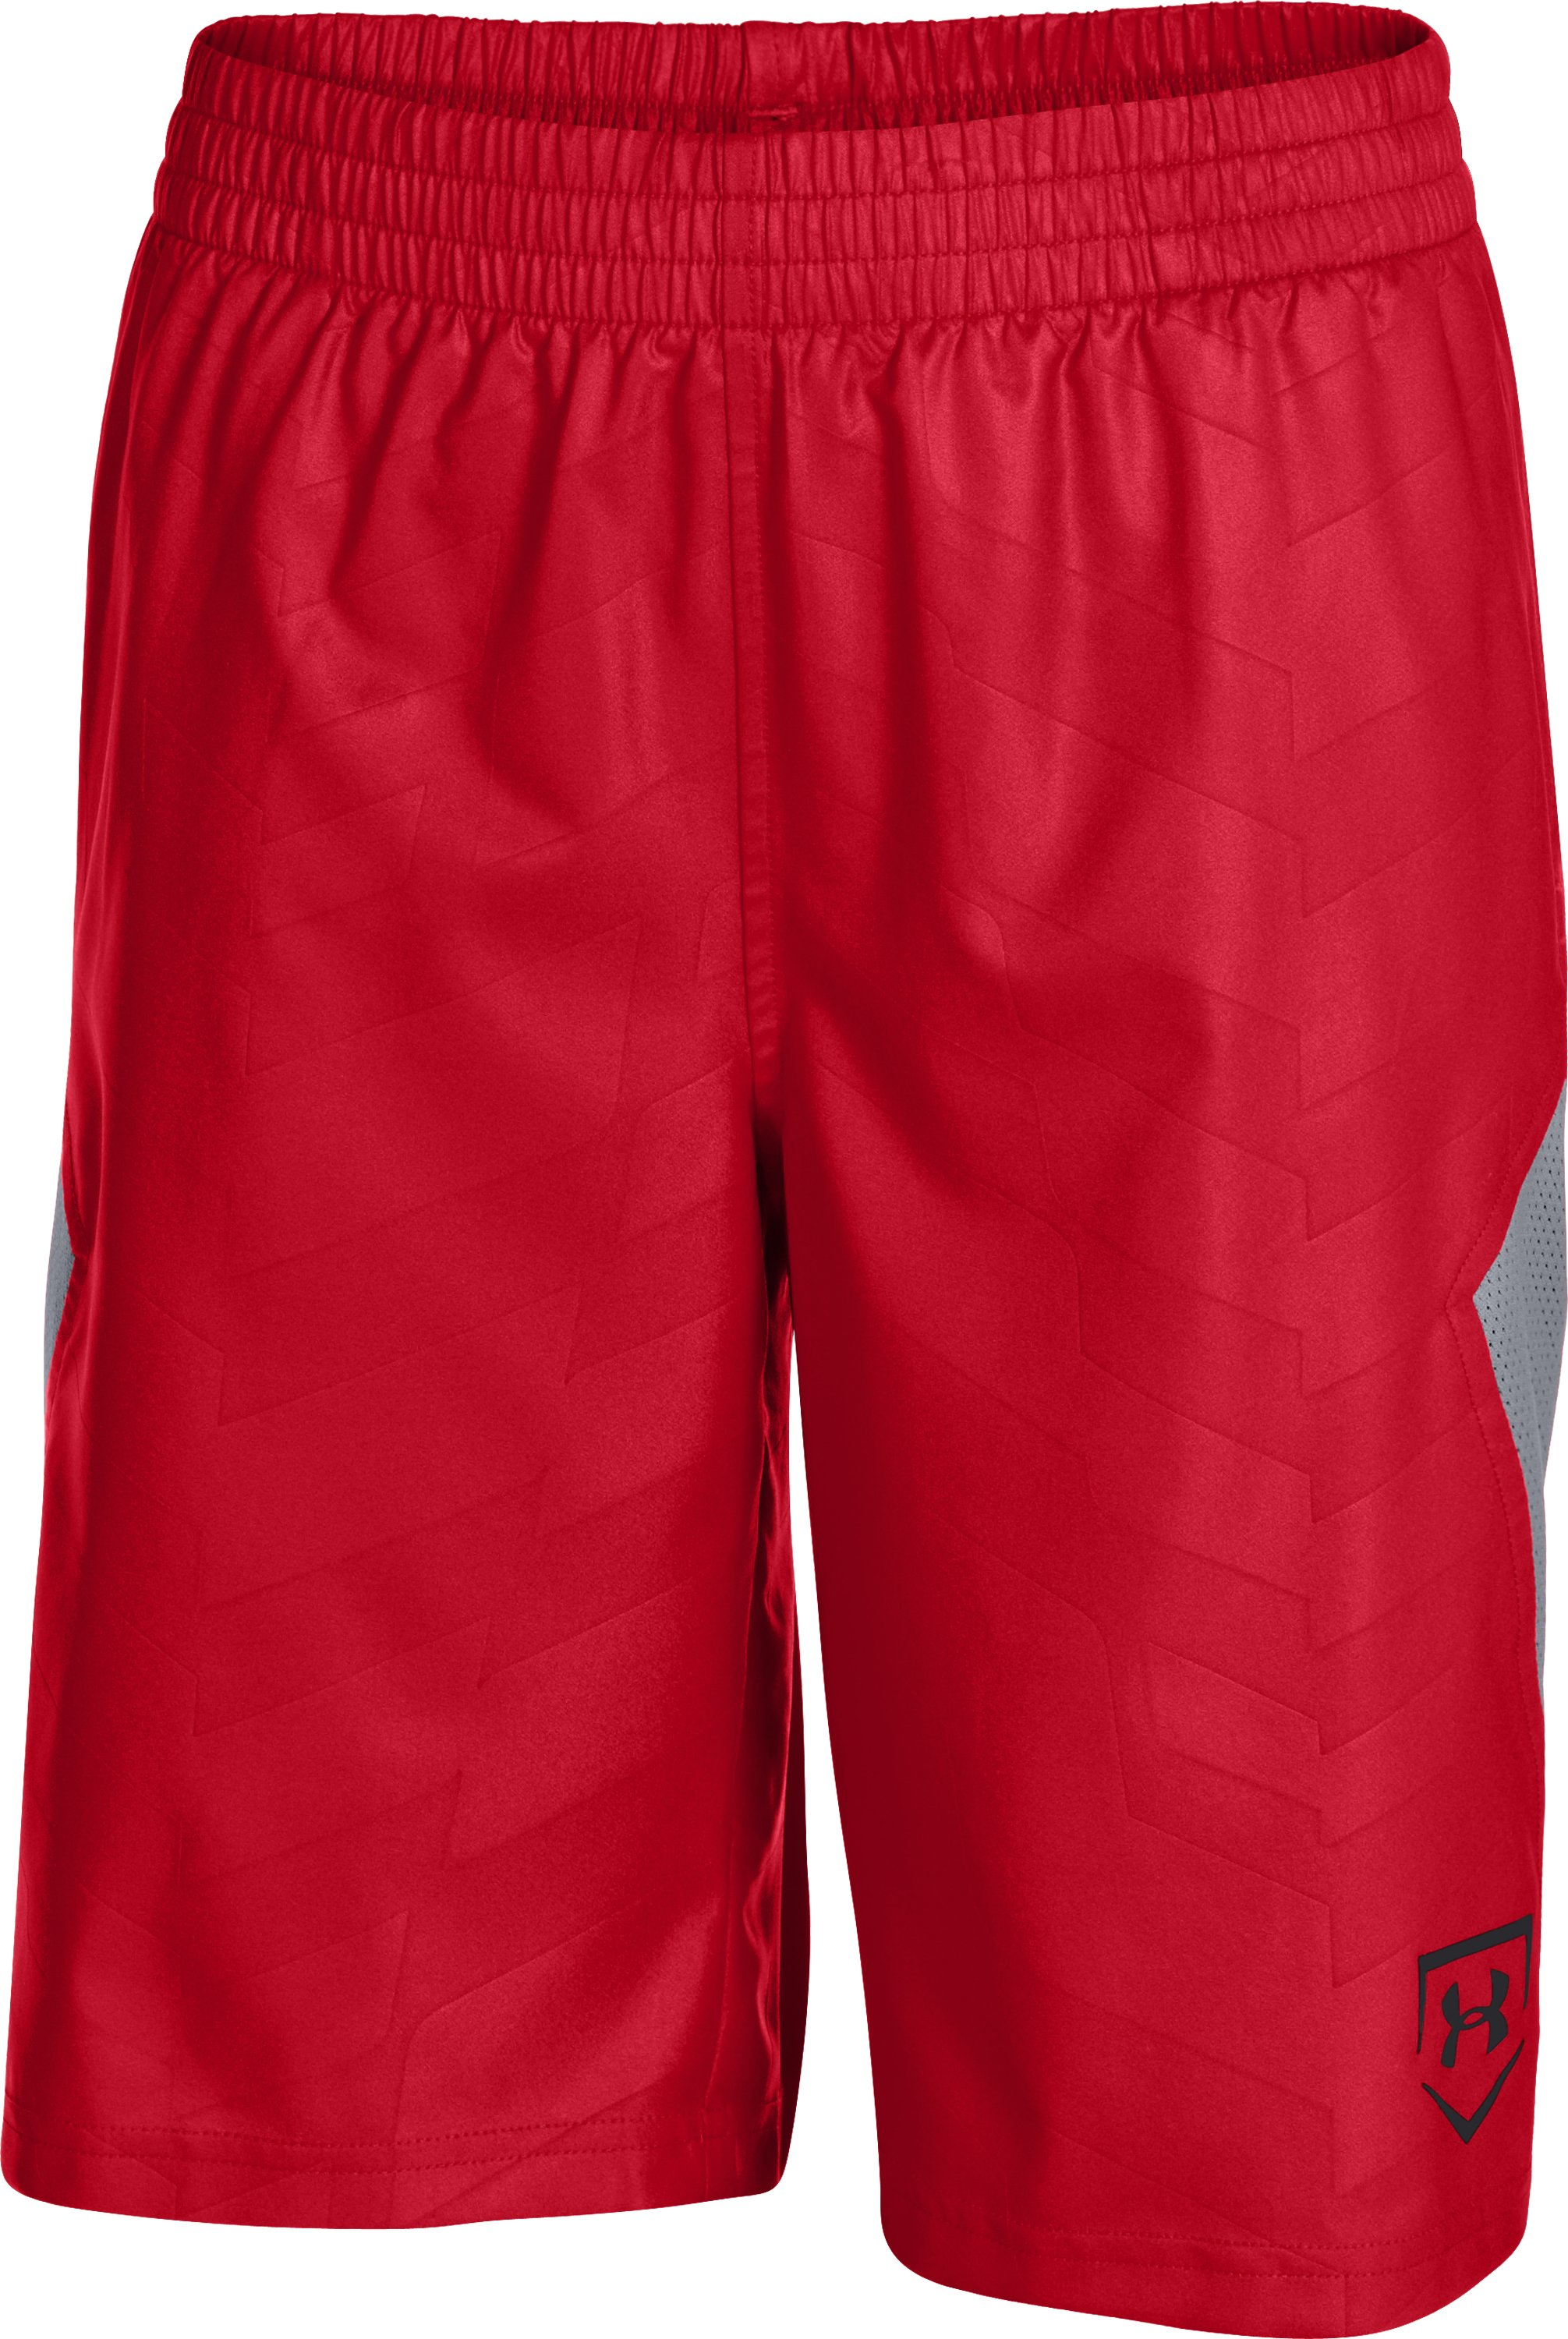 Boys' UA CTG Baseball Training Shorts, Red, zoomed image